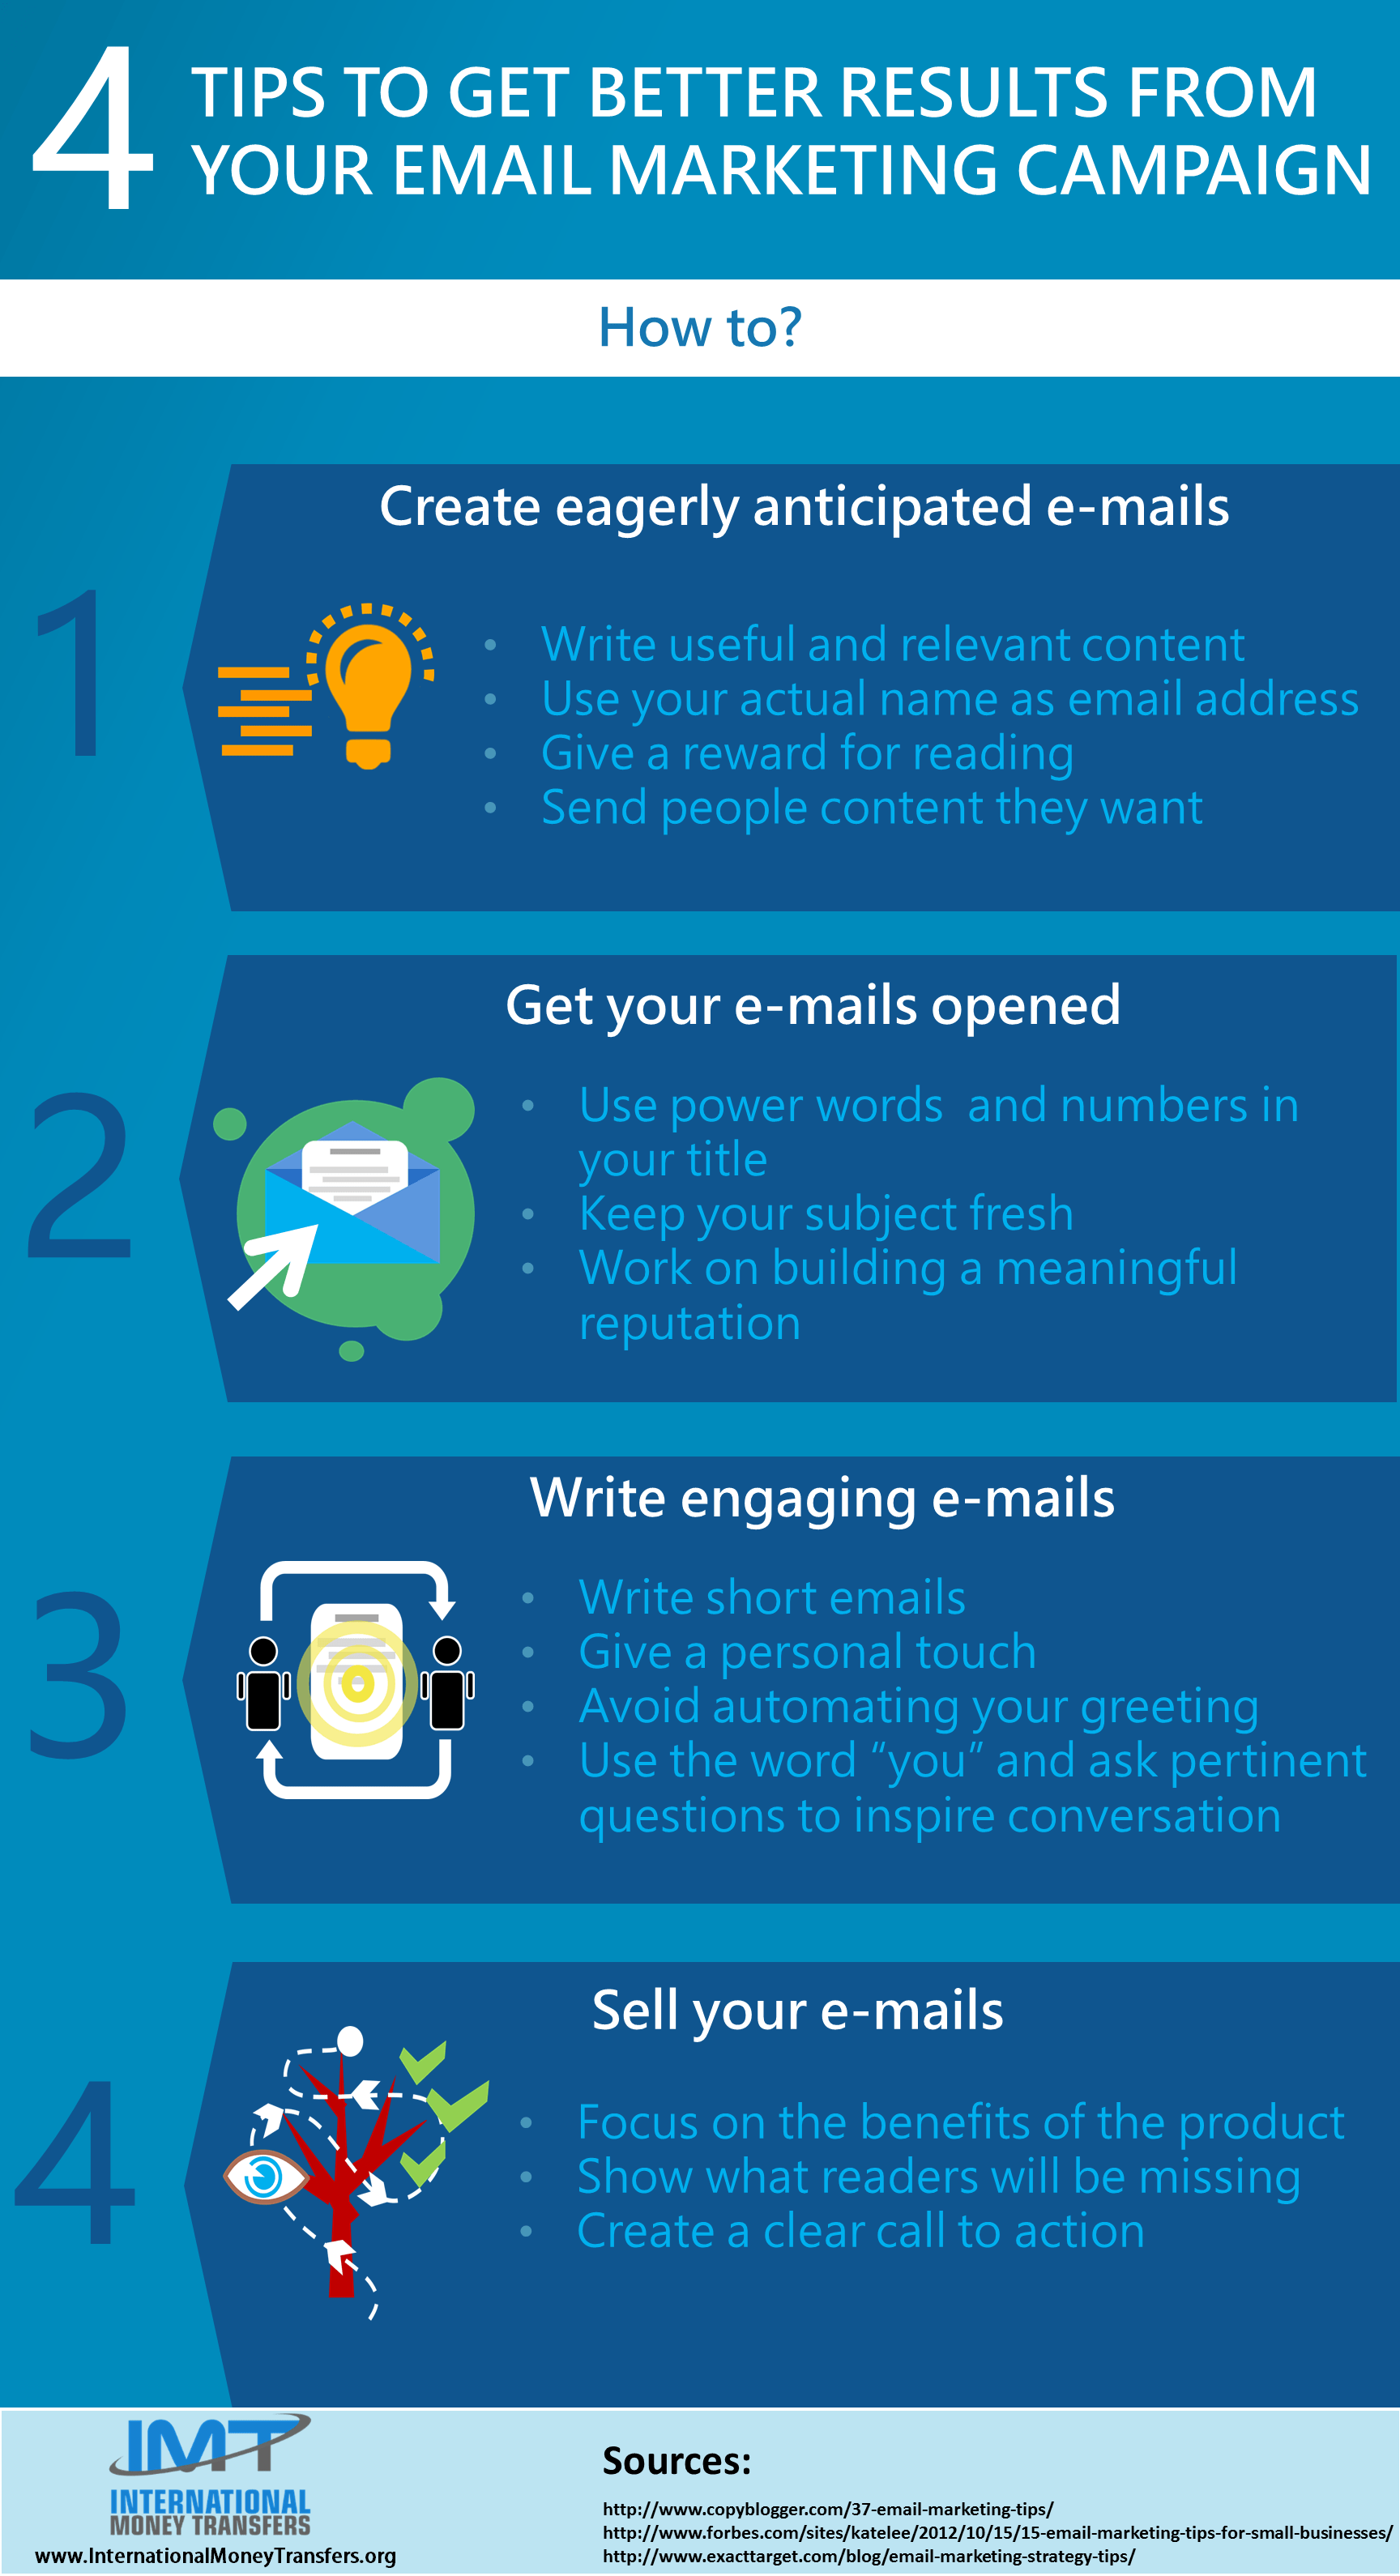 4 Tips to Get Better Results from Your Email Marketing Campaign